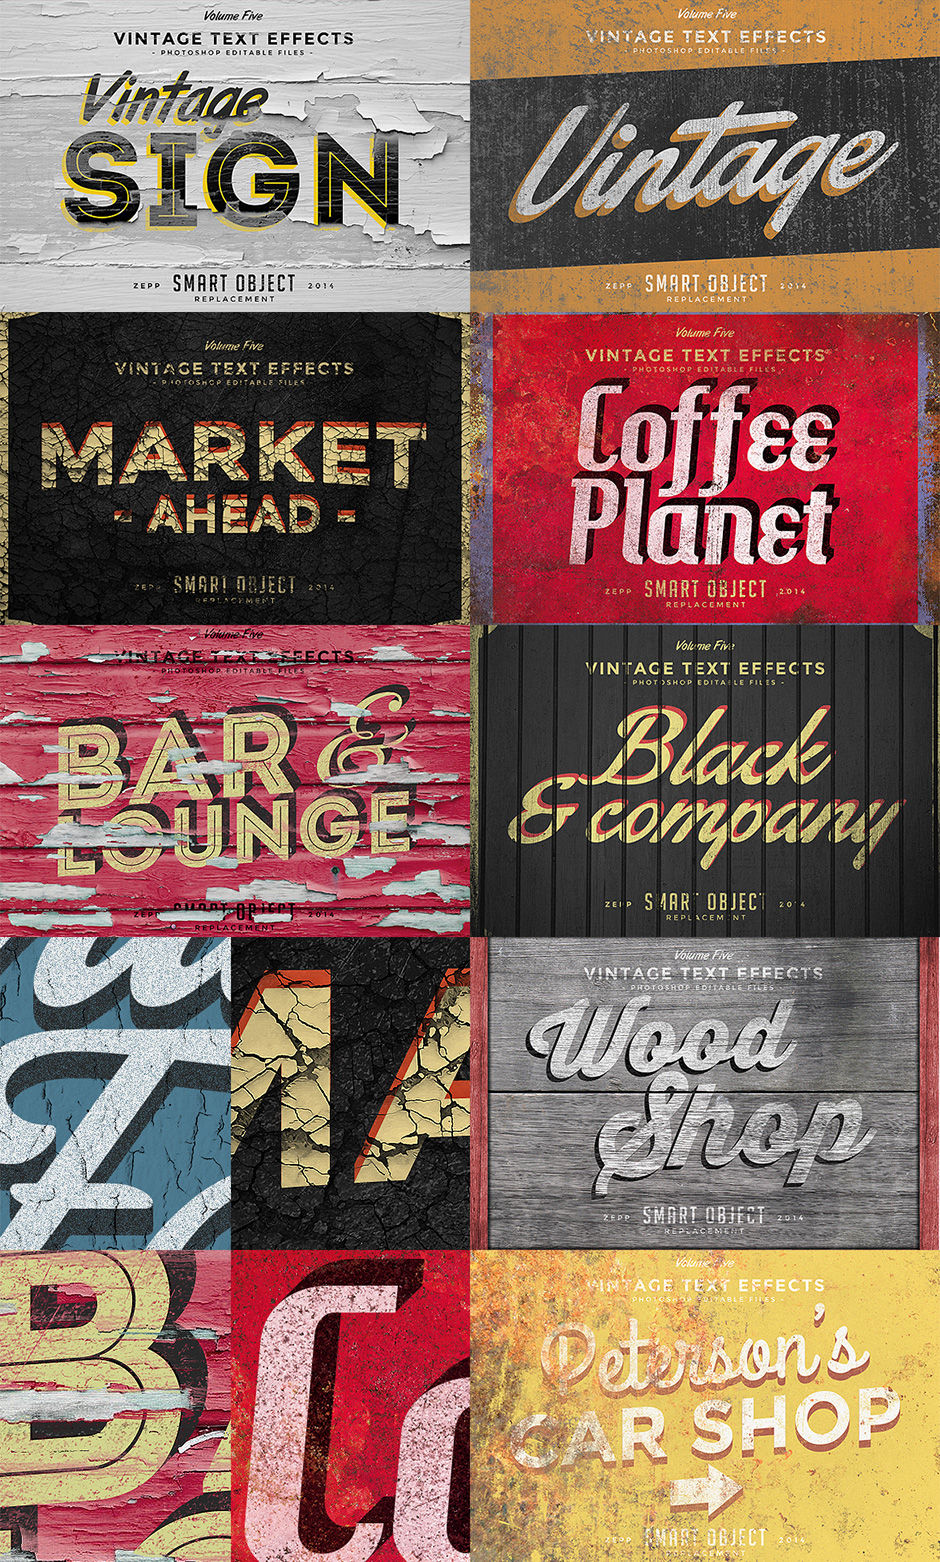 Vintage-ify Your Text In Seconds With This Vintage Text Effects Bundle